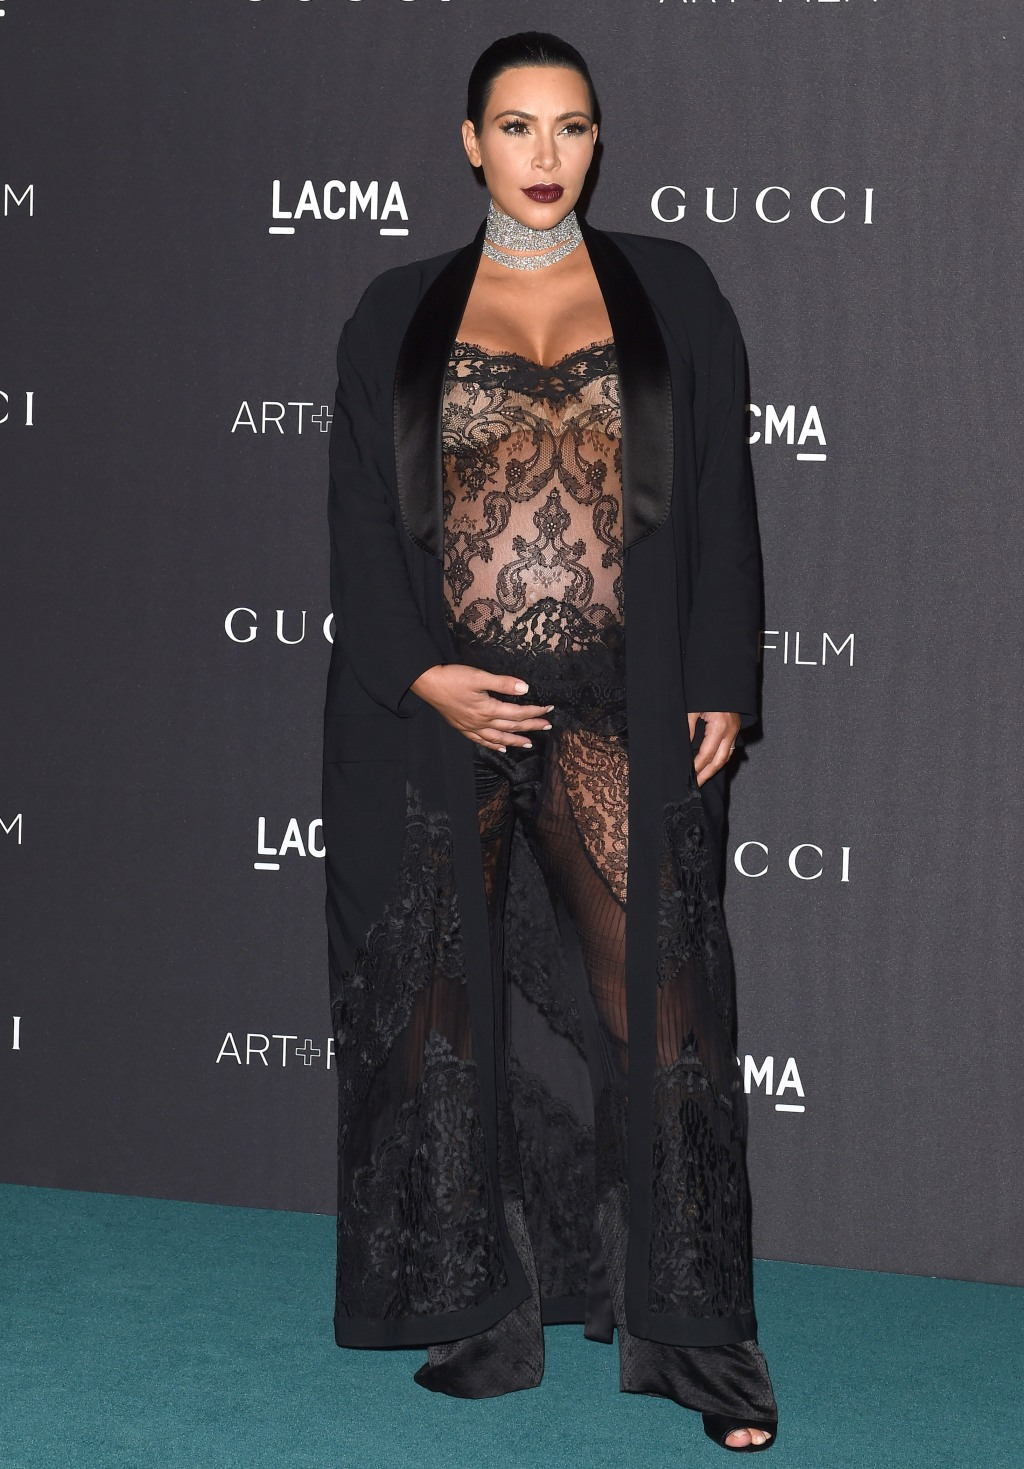 pregnant kim kardashian at 2015 LACMA Art + Film Gala